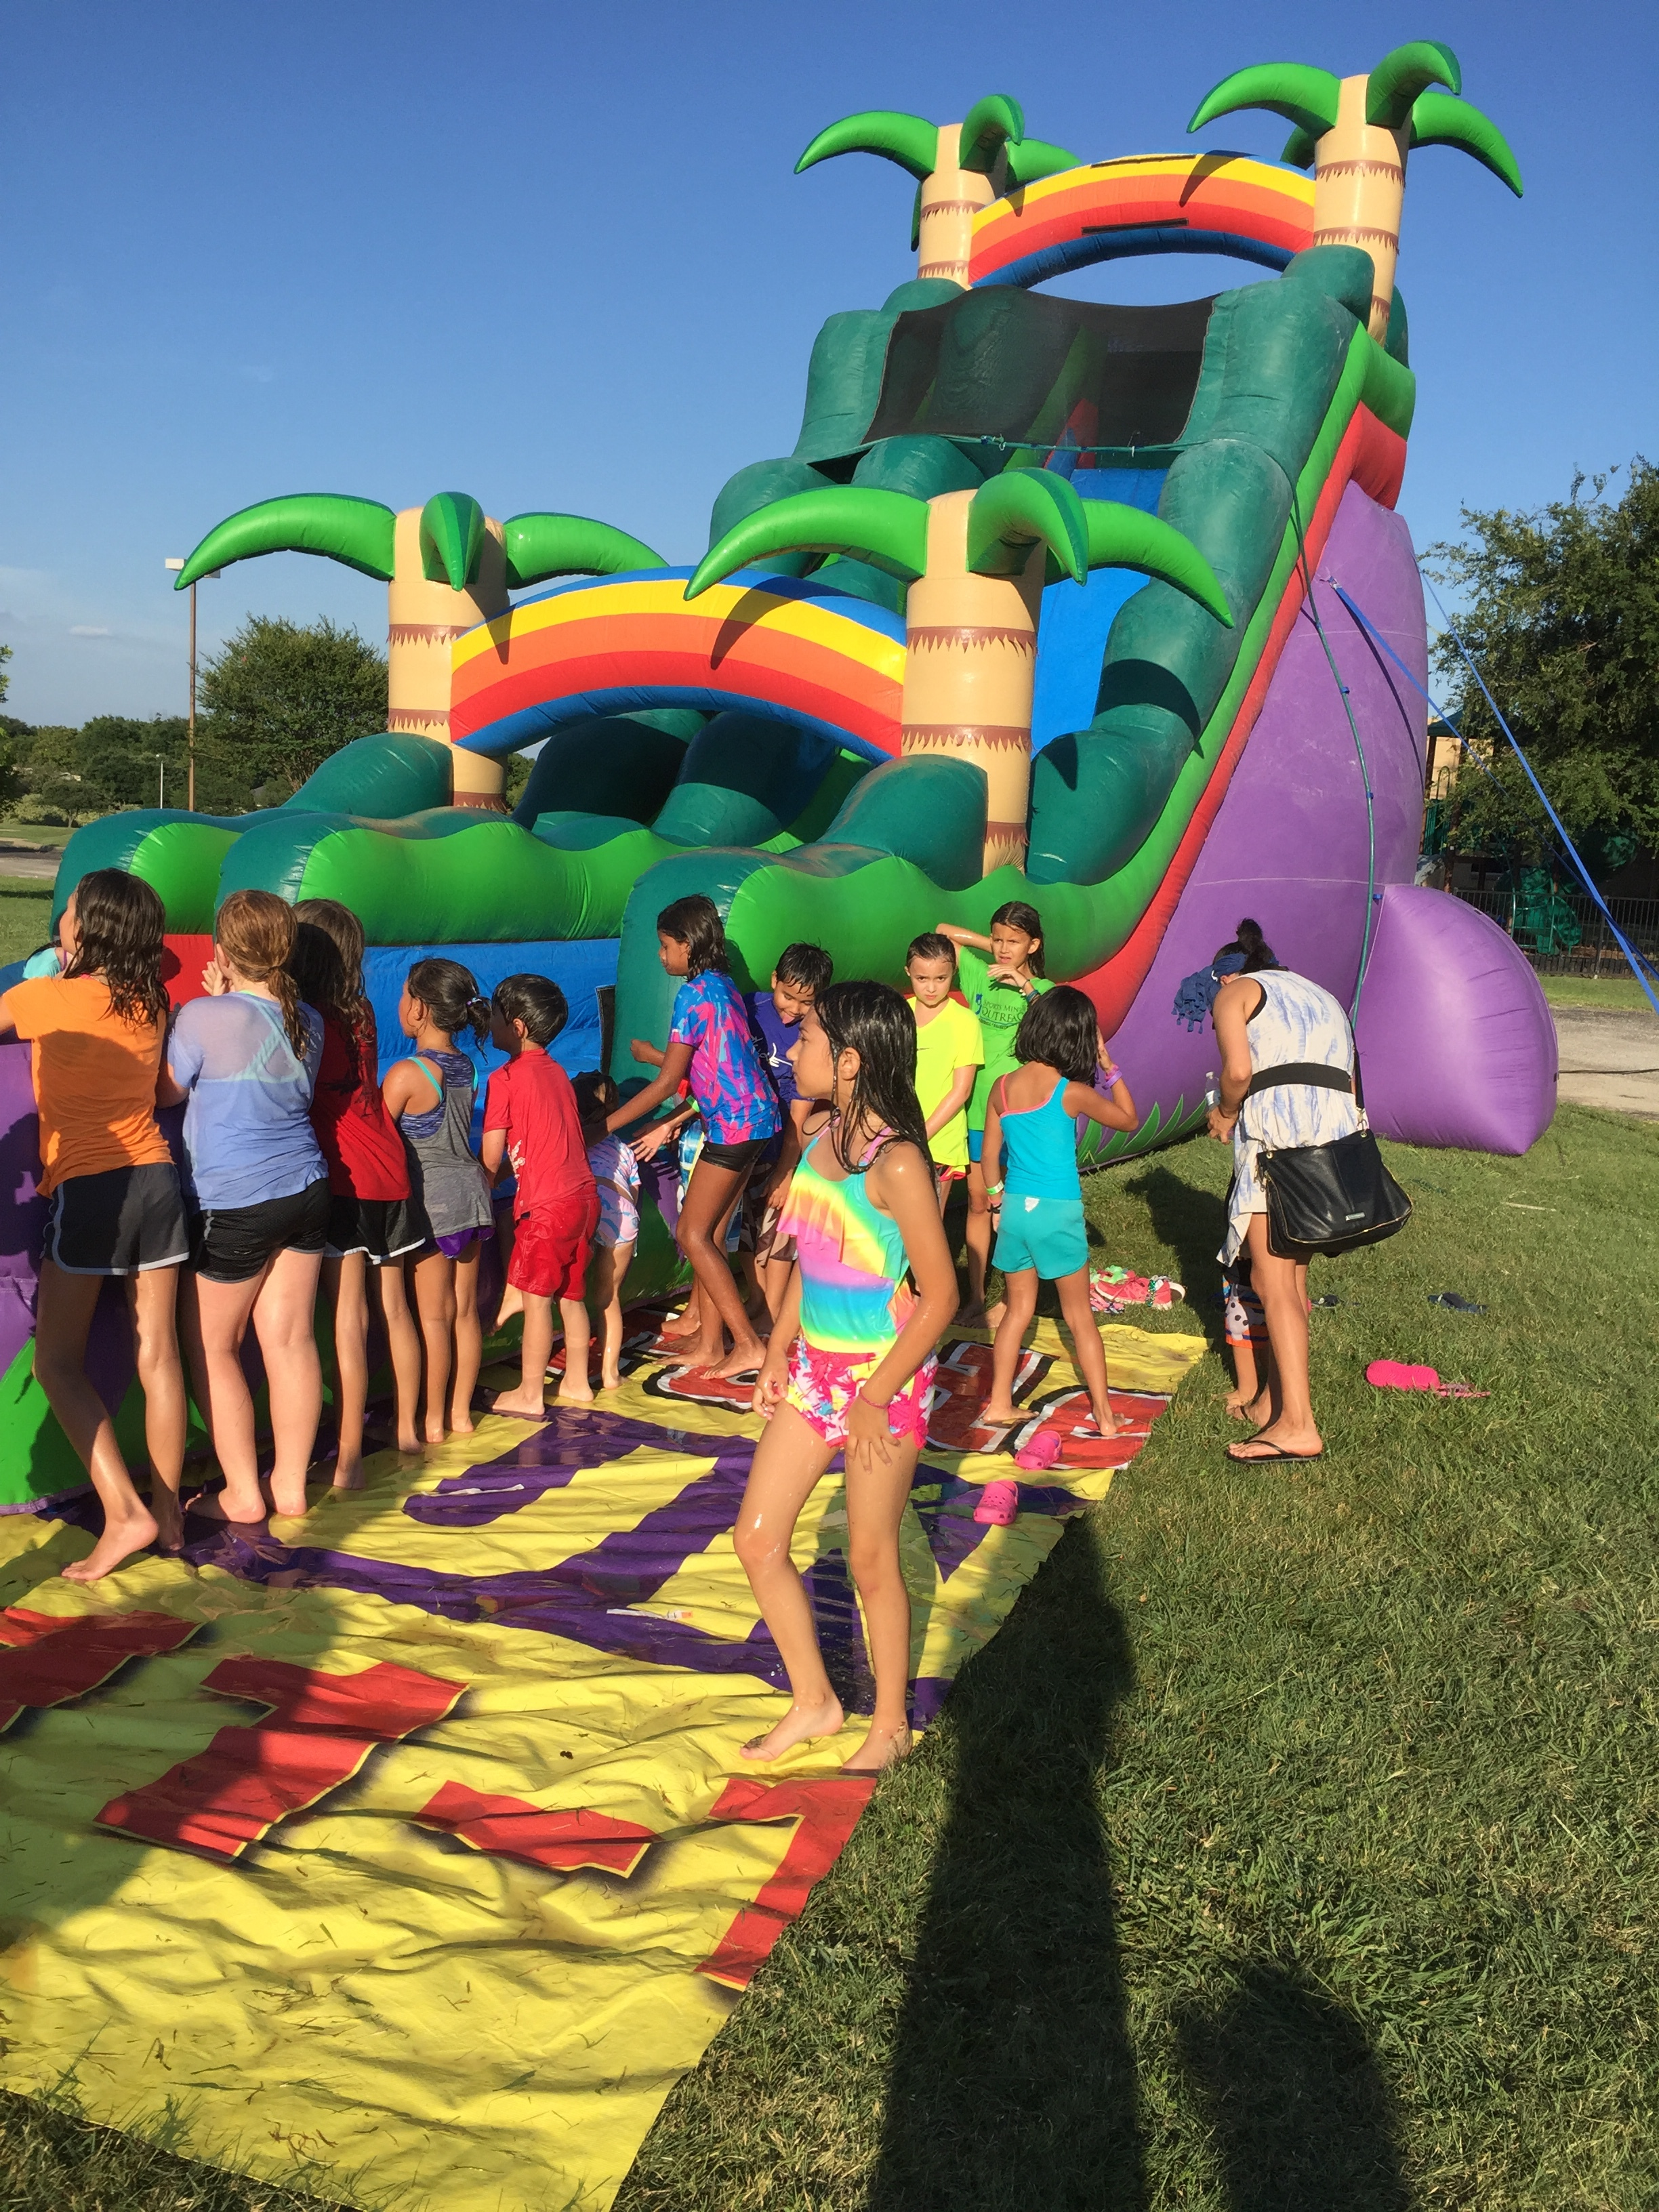 a huge waterslide for kids at the Splash N Dash event at Hulen Street Church in Fort Worth, TX.